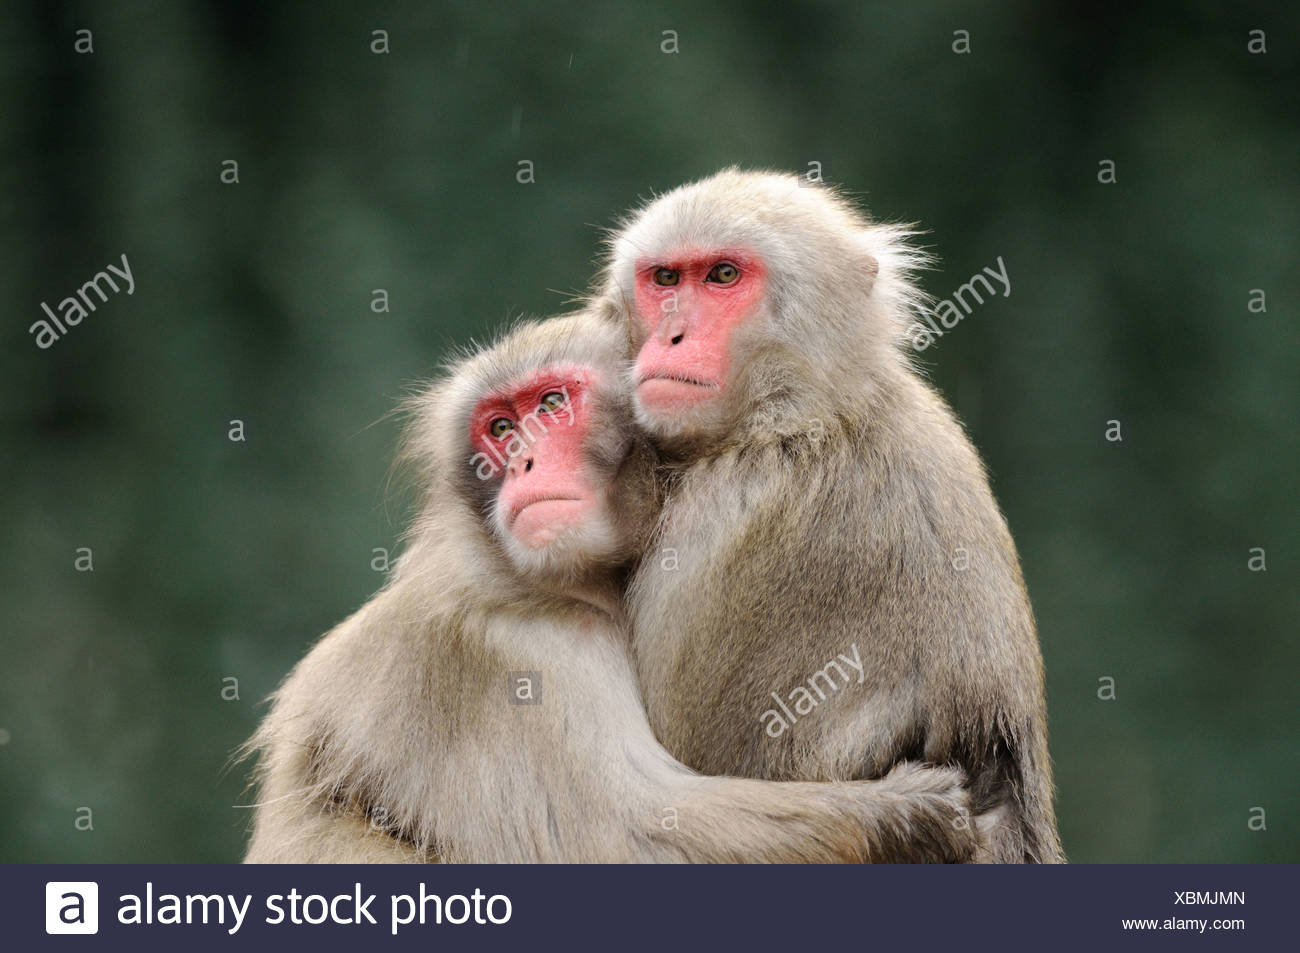 Two Red-faced makaks (Macaca fuscata) embracing each other Stock Photo